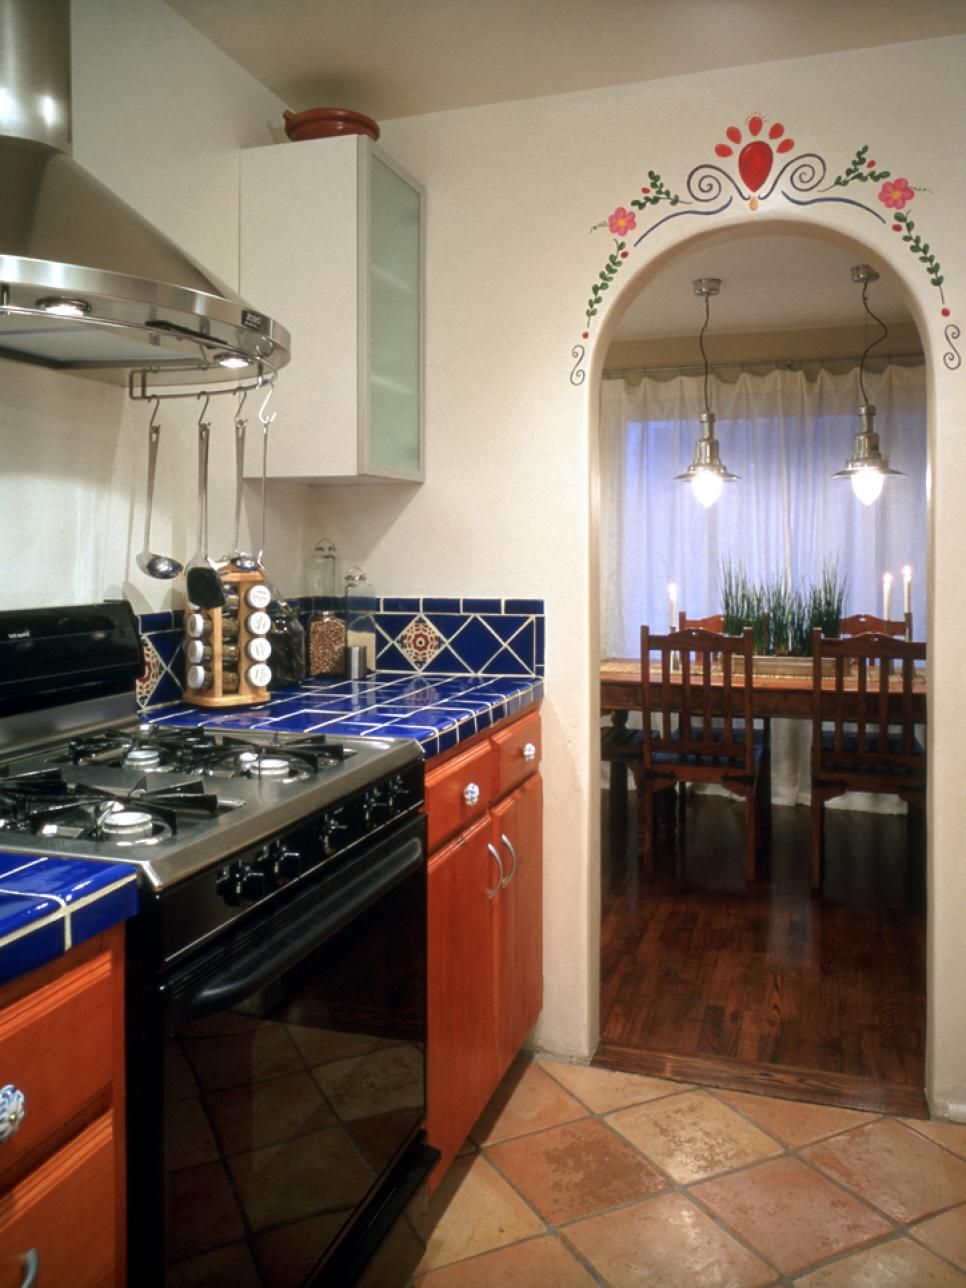 Handpainted Tiles And Archway Provide Authenticity For This Mexican Style  Kitchen. Design By Erica Islas